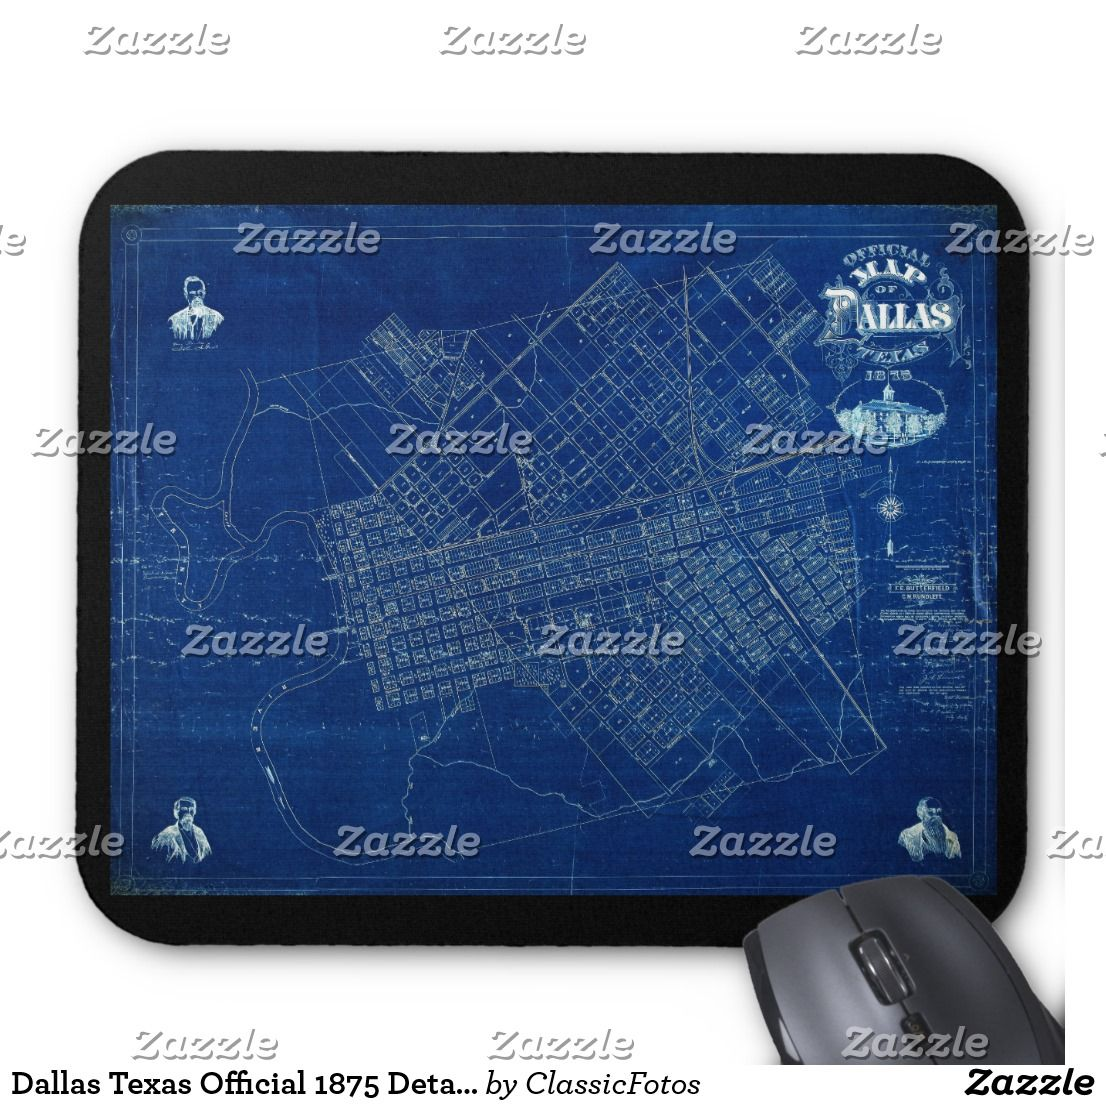 Dallas texas official 1875 detailed blueprint map mouse pad texas dallas texas official 1875 detailed blueprint map mouse pad texas mouse pad dallas mouse malvernweather Image collections